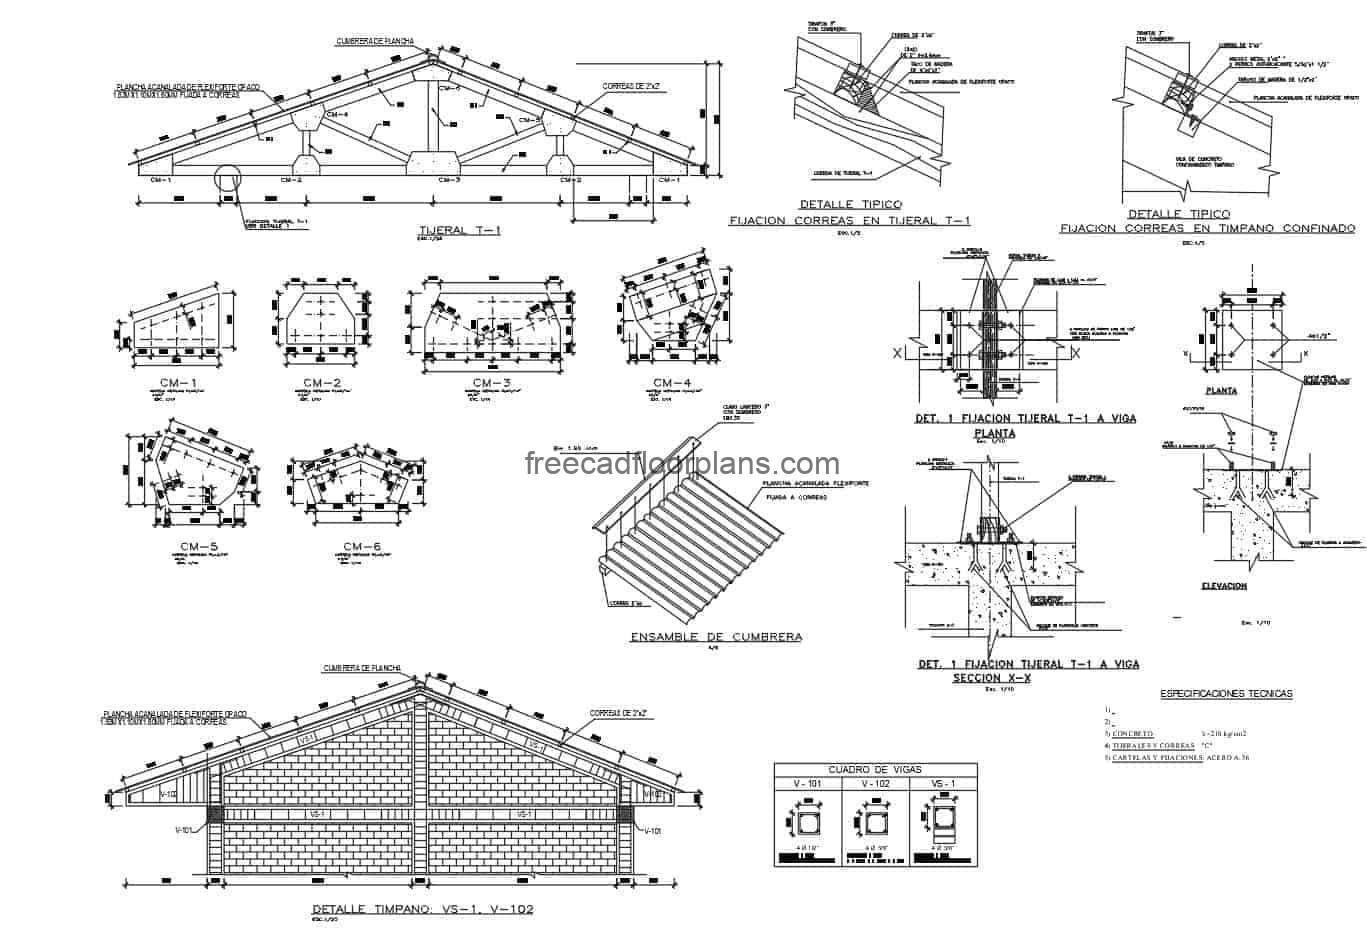 Autocad plan for free download of construction details of wooden roof